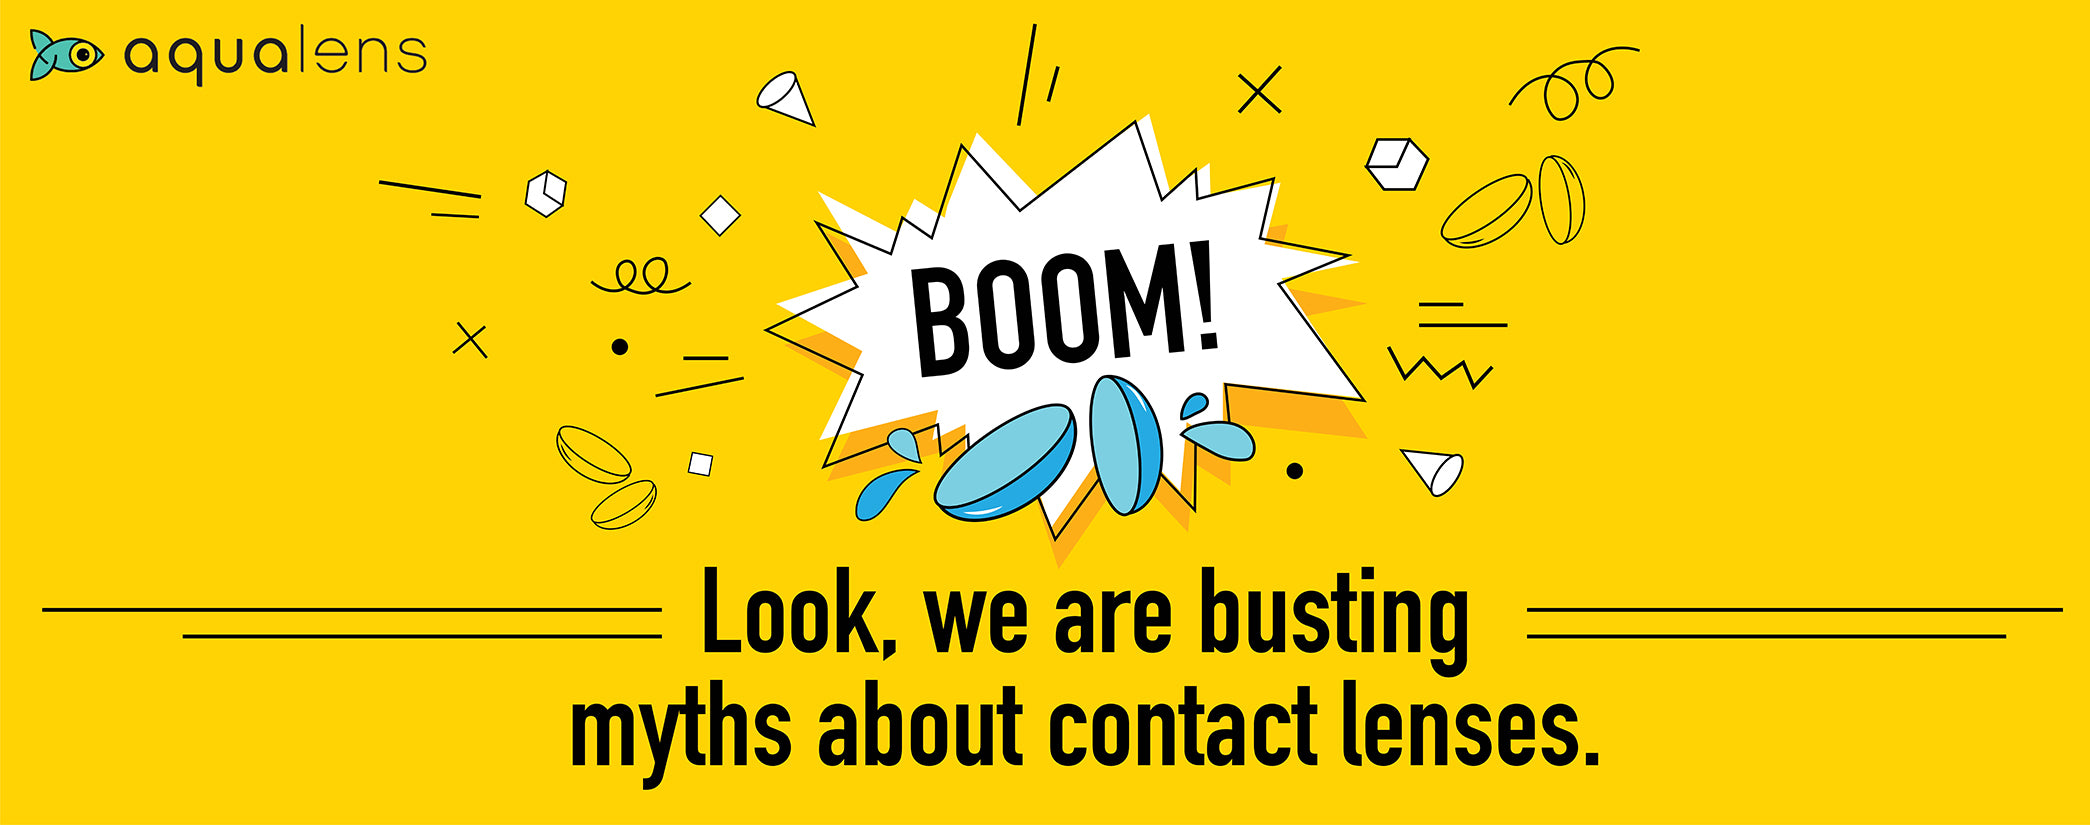 Busting myths about contact lenses